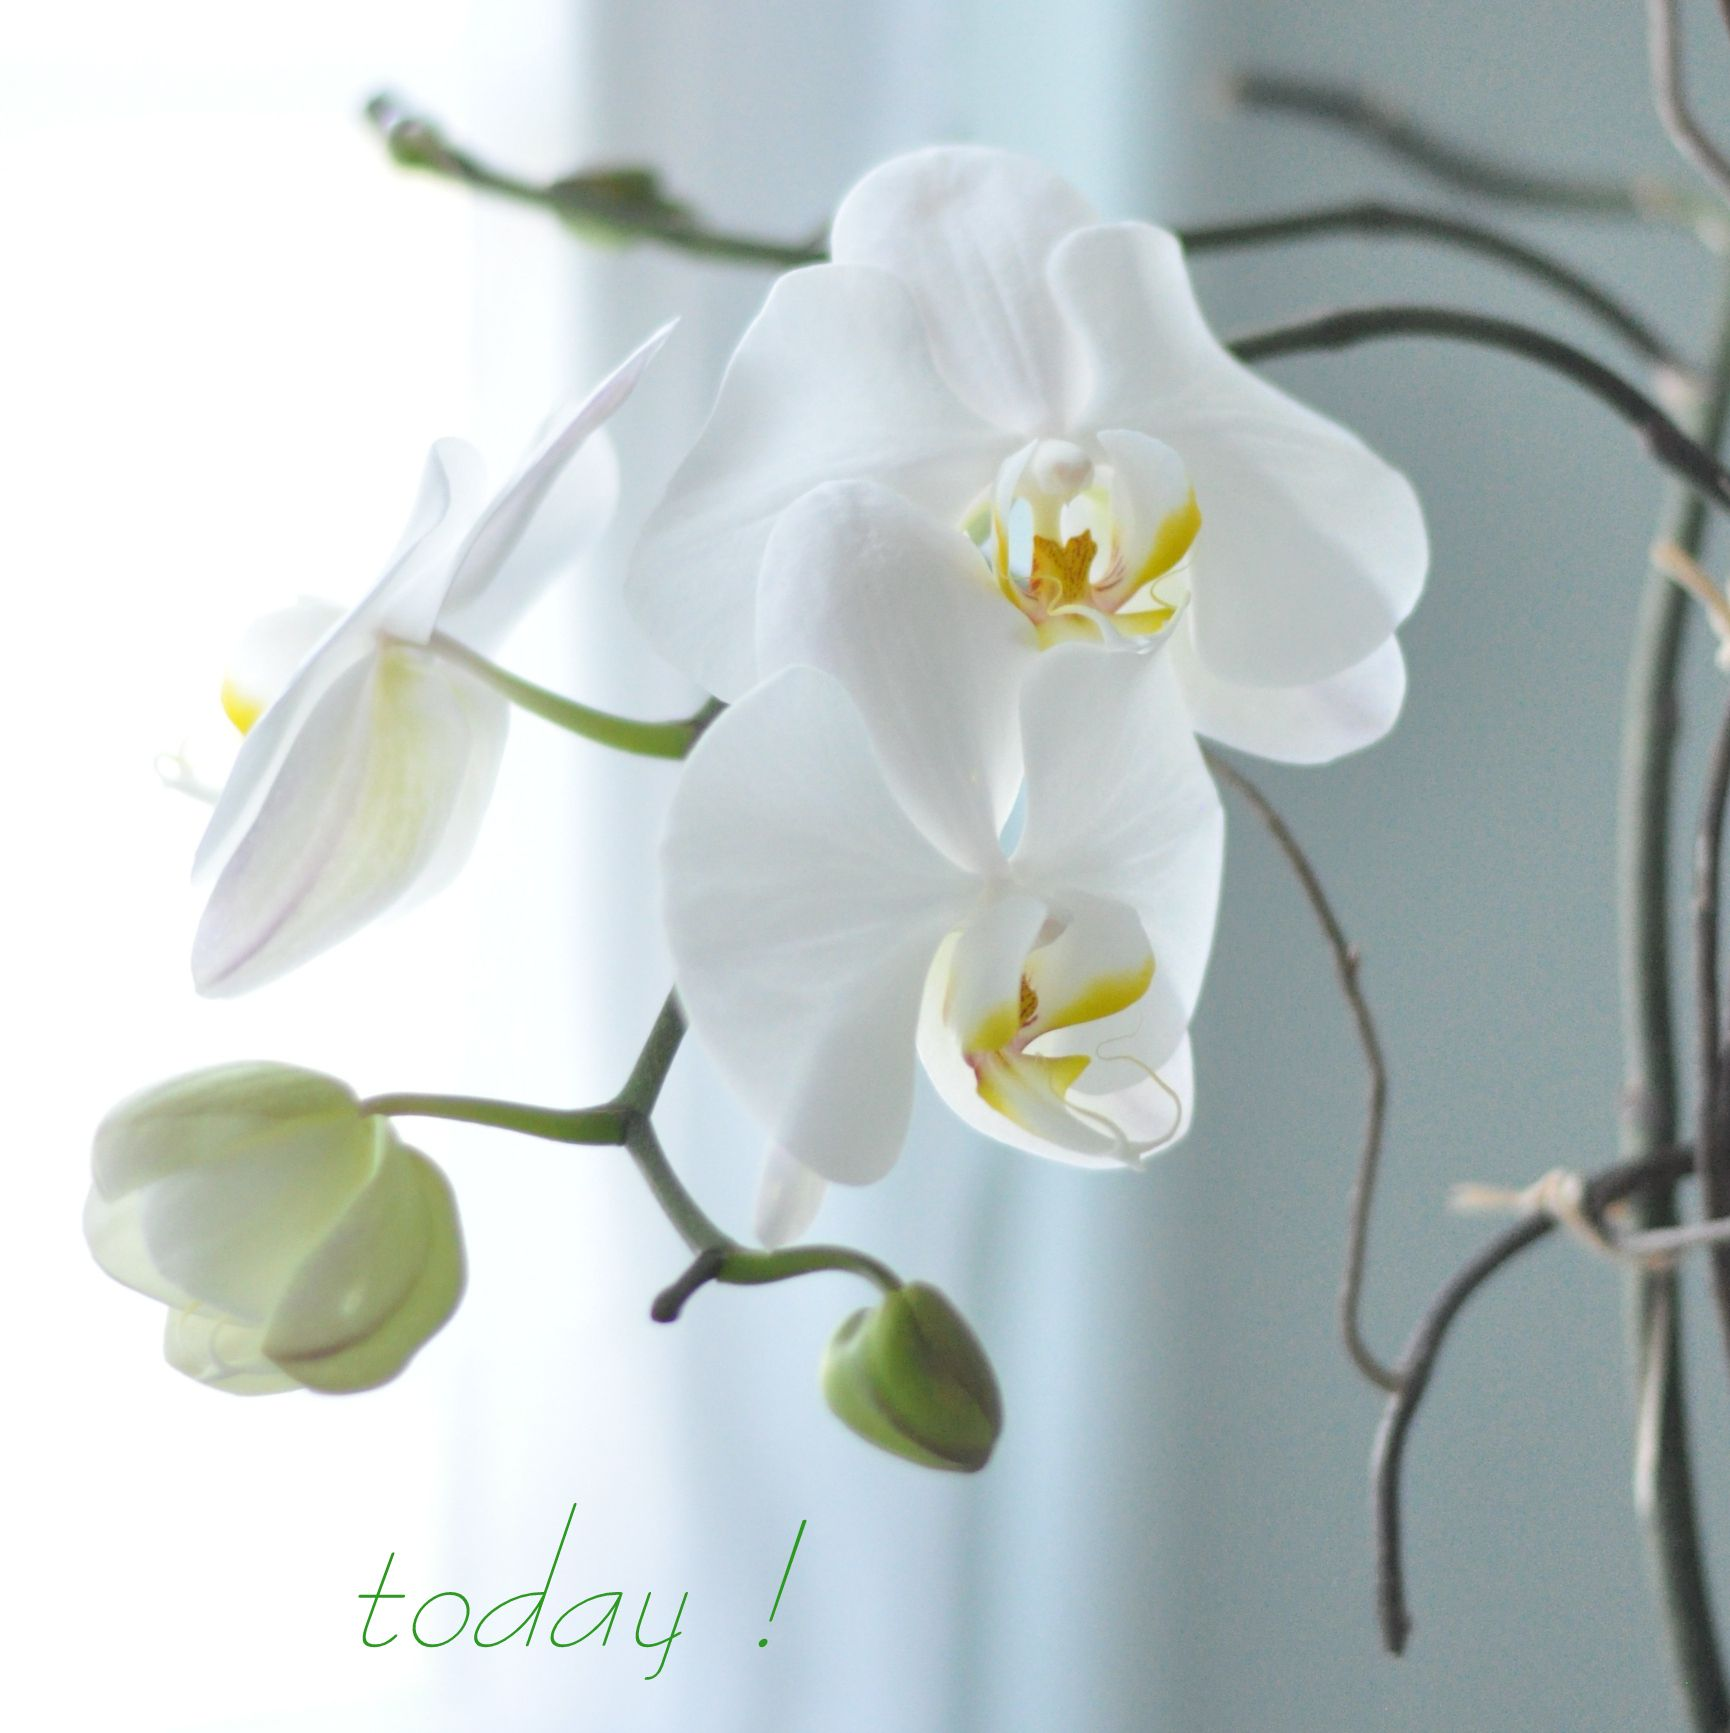 How To Keep An Orchid Alive And Reblooming Orchids Pinterest - Orquideas-blancas-cuidados